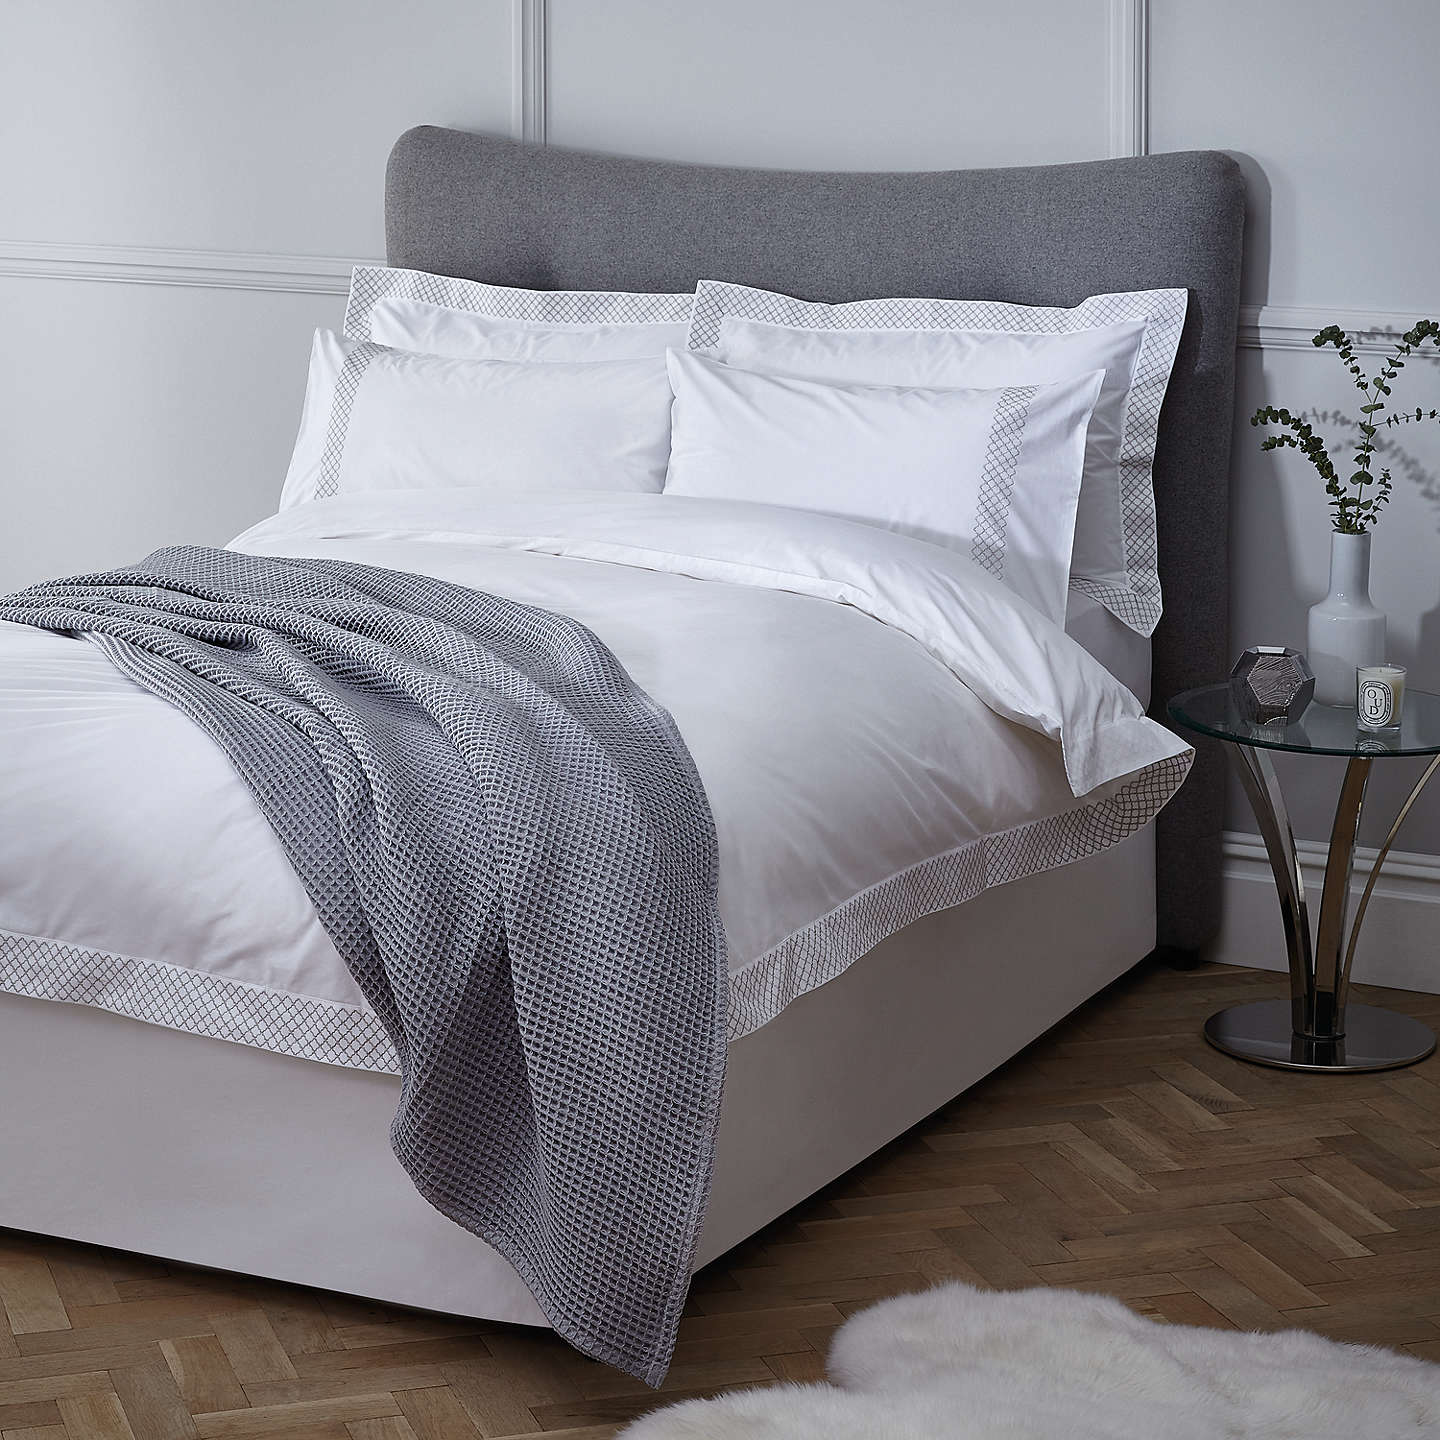 john lewis rome embroidered cotton bedding at john lewis. Black Bedroom Furniture Sets. Home Design Ideas